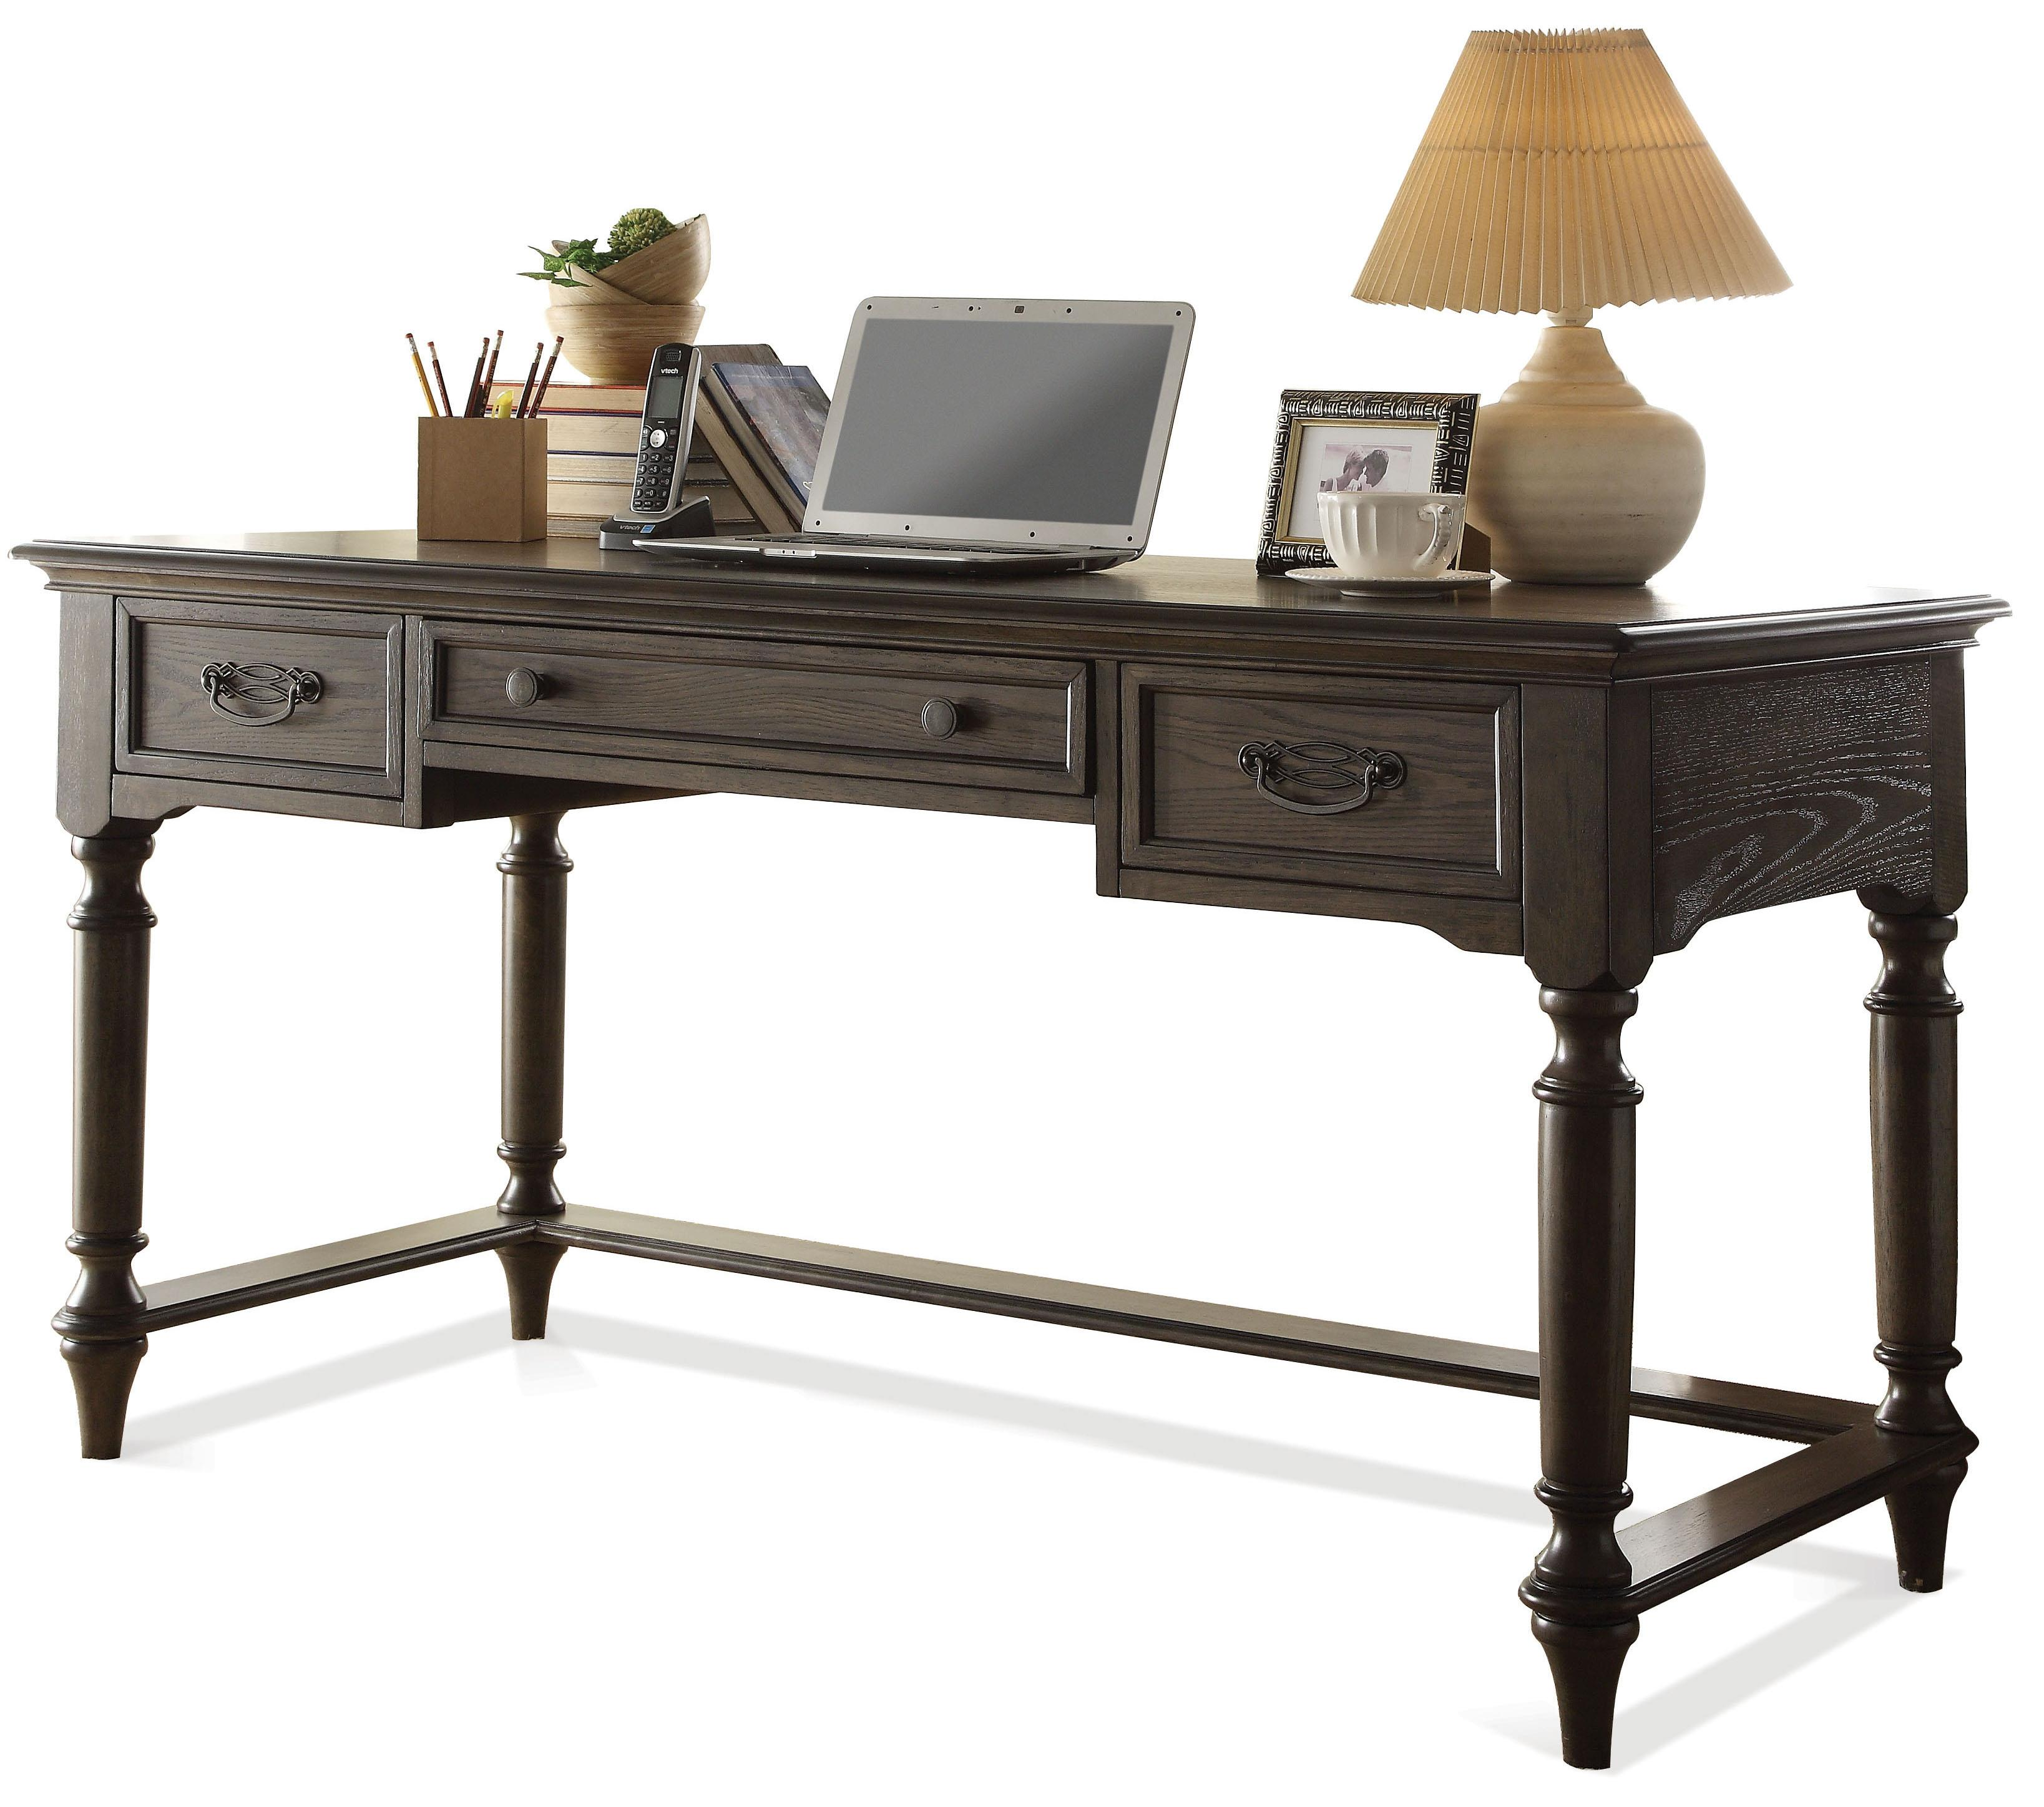 Lovely By Riverside Furniture. Traditional Writing Desk W/ Outlet